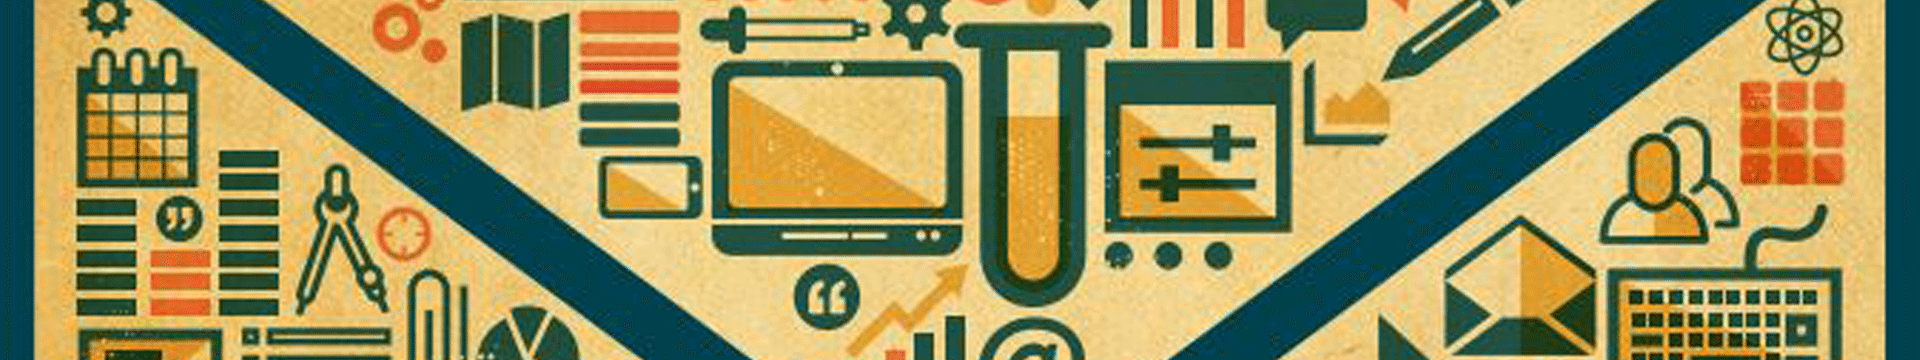 Improve your campaigns with these 4 lessons from <span>Hubspot's Science of Email 2014</span>